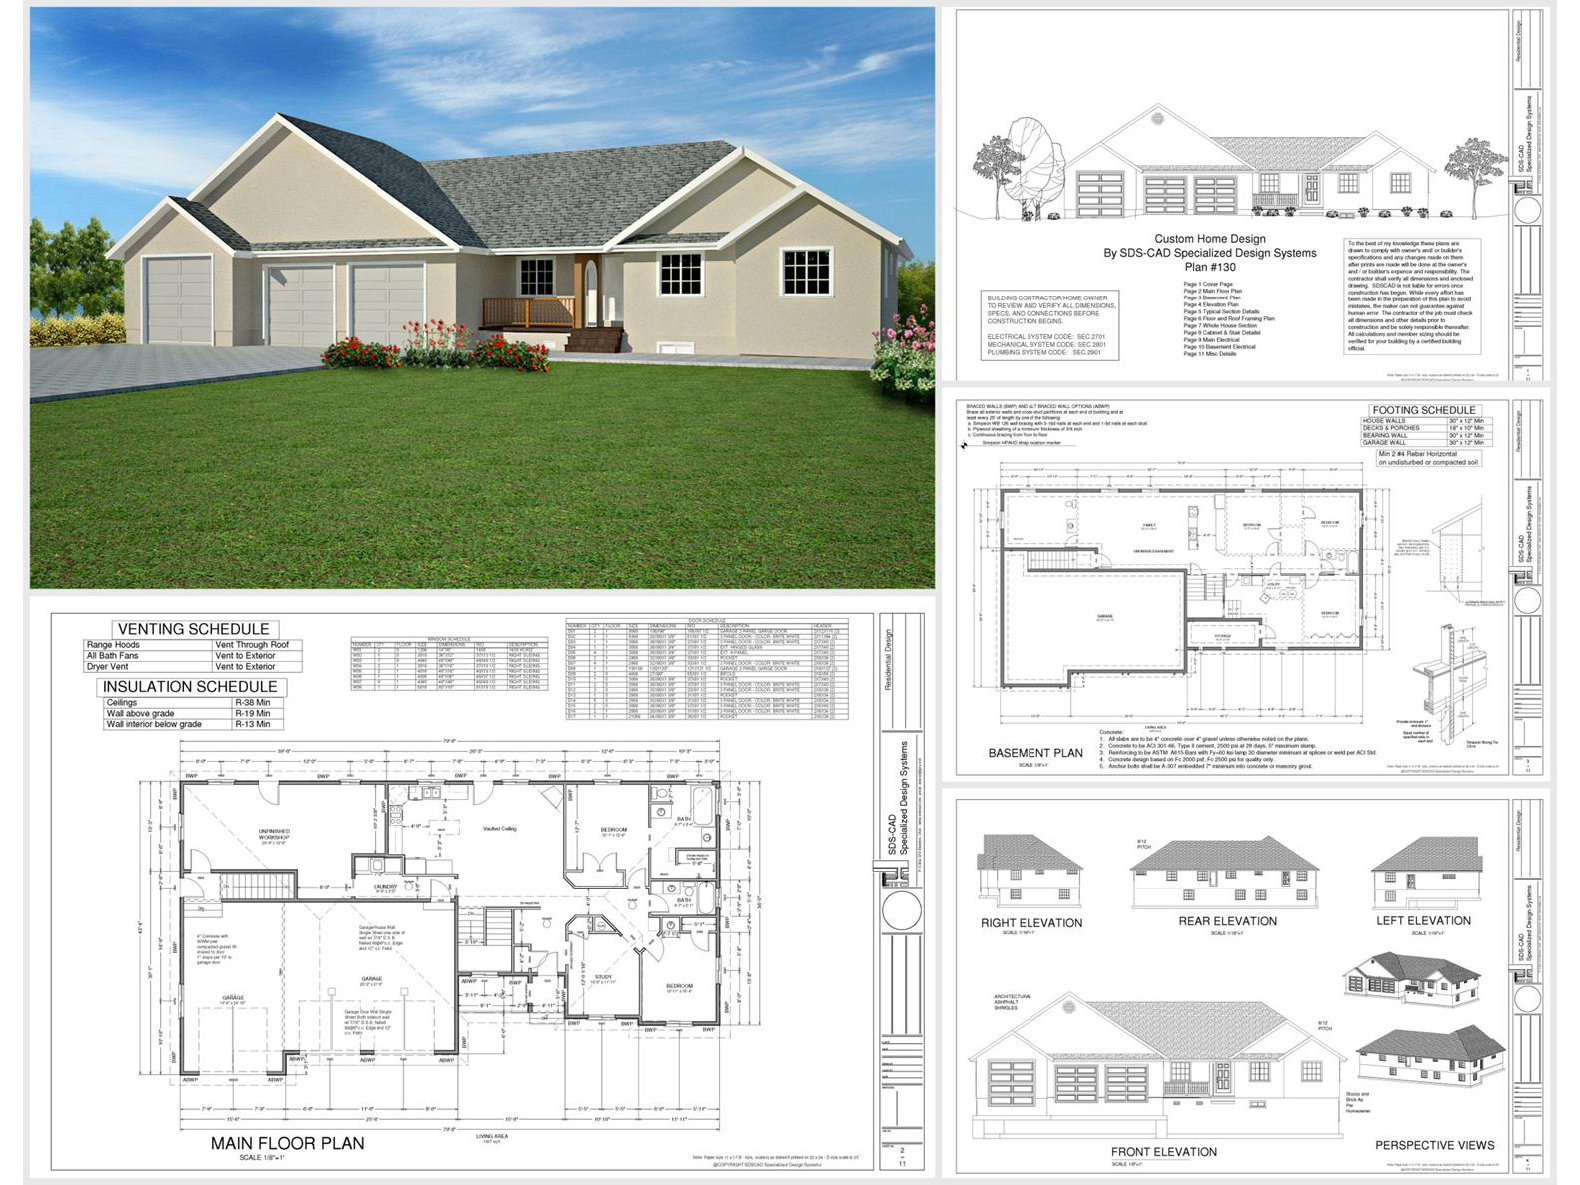 100 house plans catalog page 032 9 plans for House design pdf